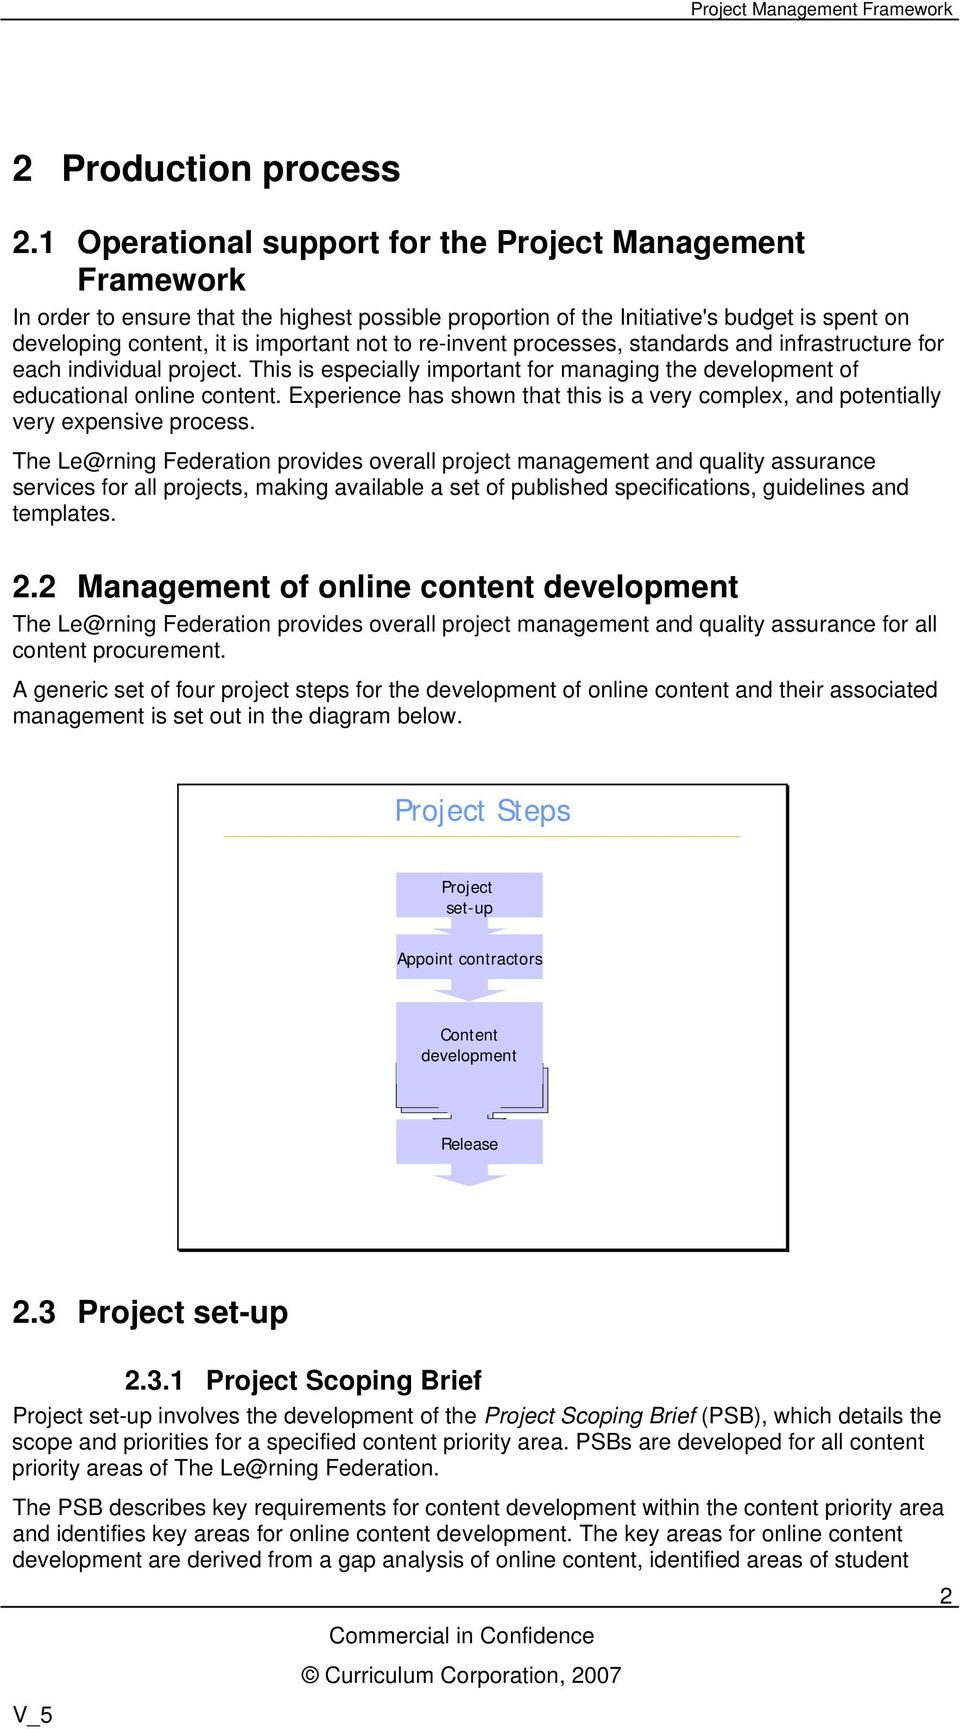 re-invent processes, standards and infrastructure for each individual project. This is especially important for managing the development of educational online content.